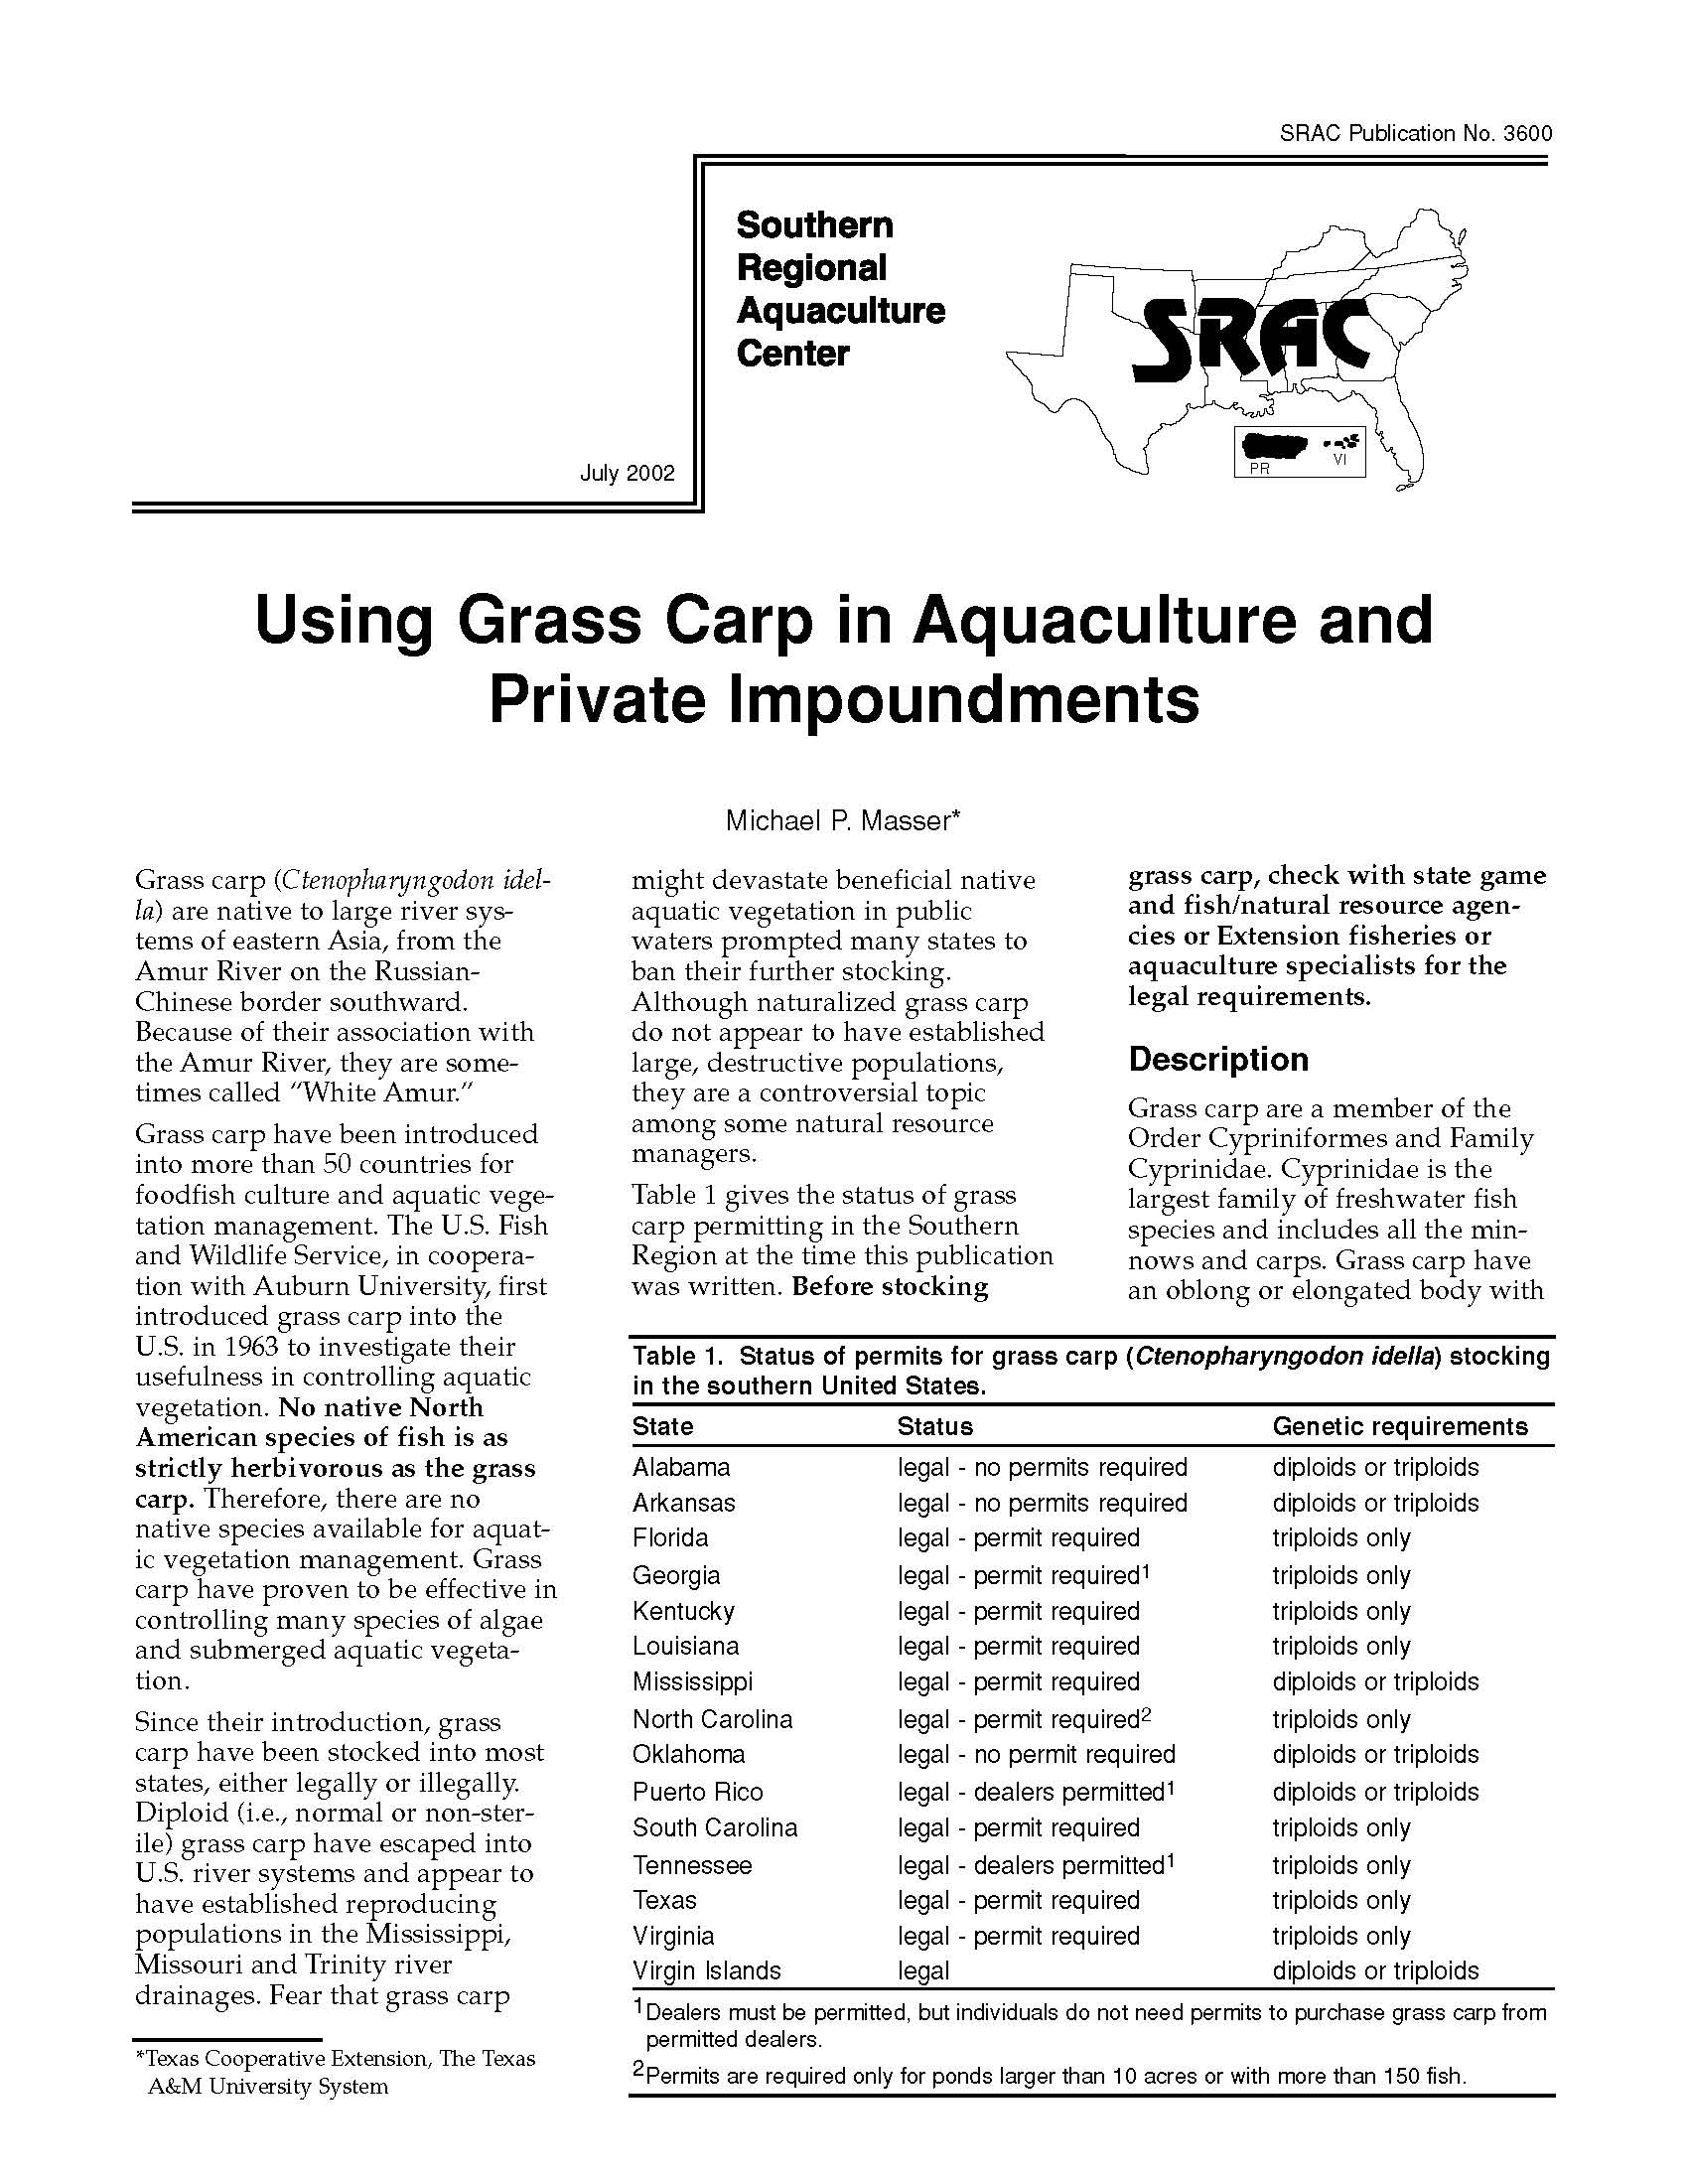 Using Grass Carp in Aquaculture and Private Impoundments